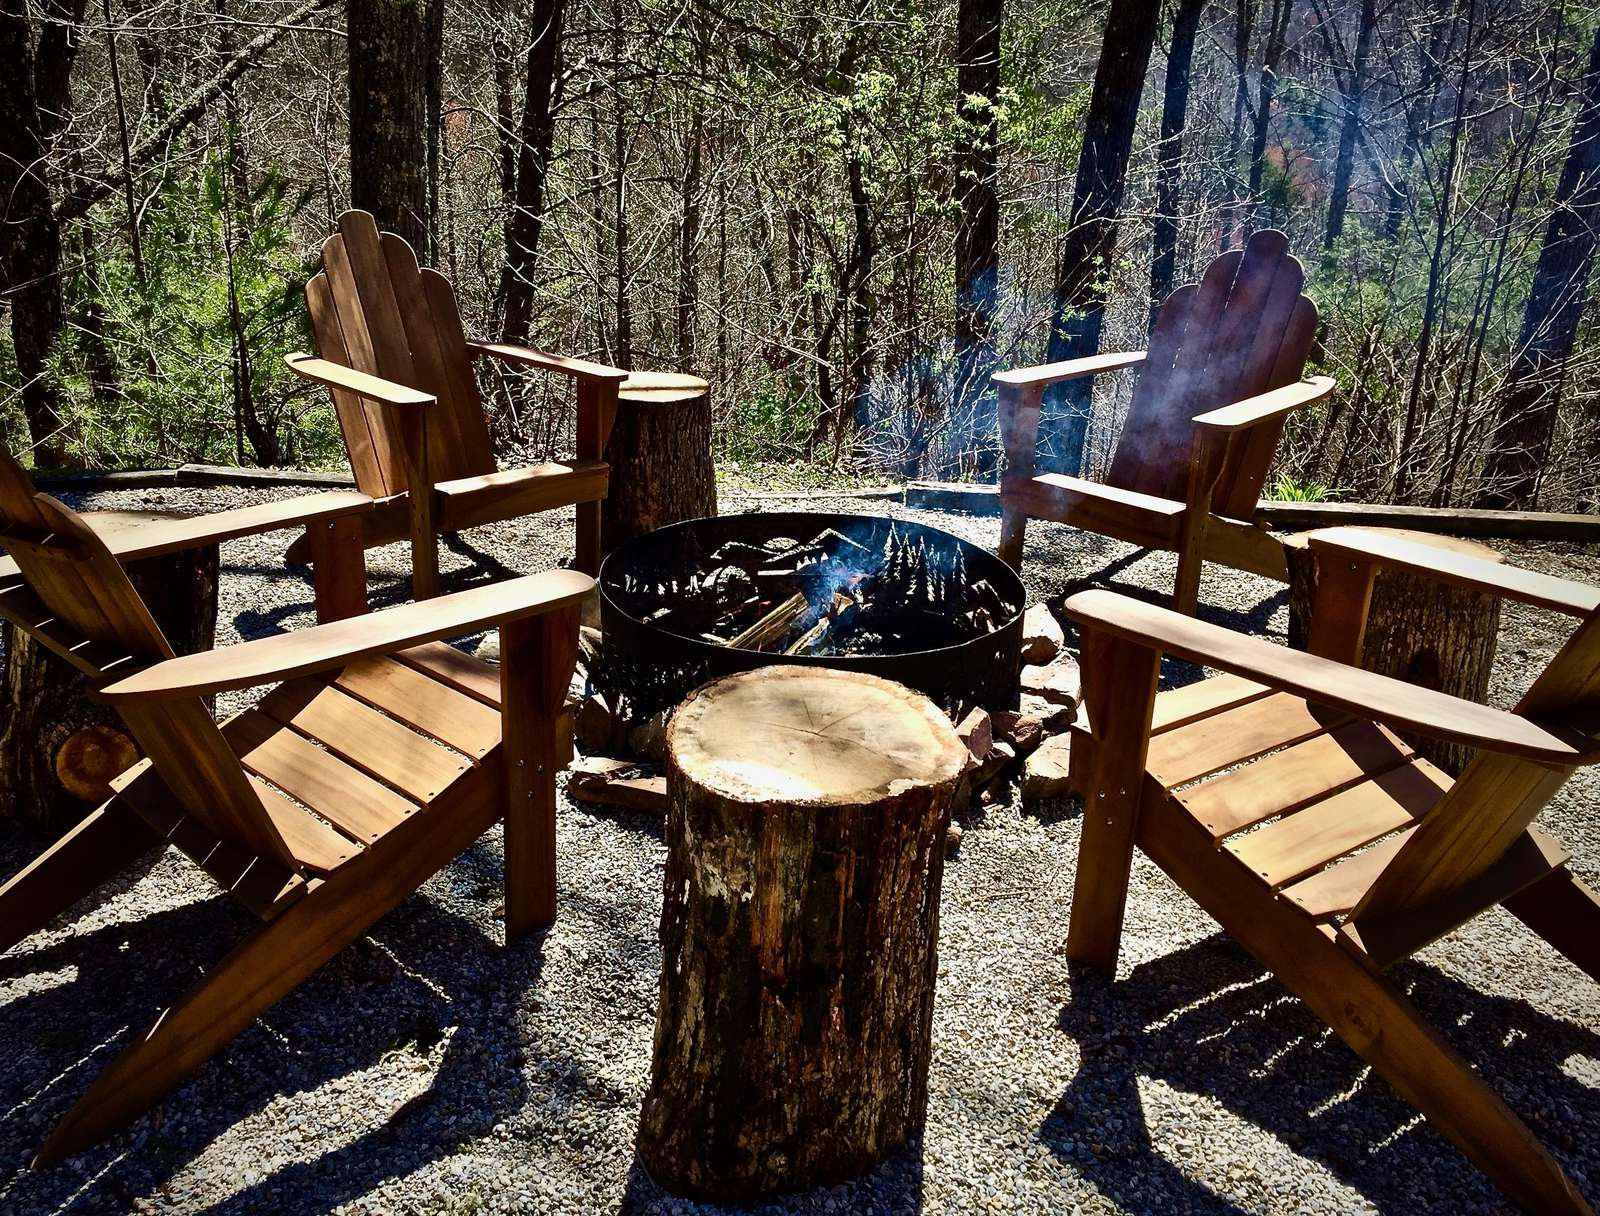 4 Teak Adirondack Chairs to Relax around the Fire Pit